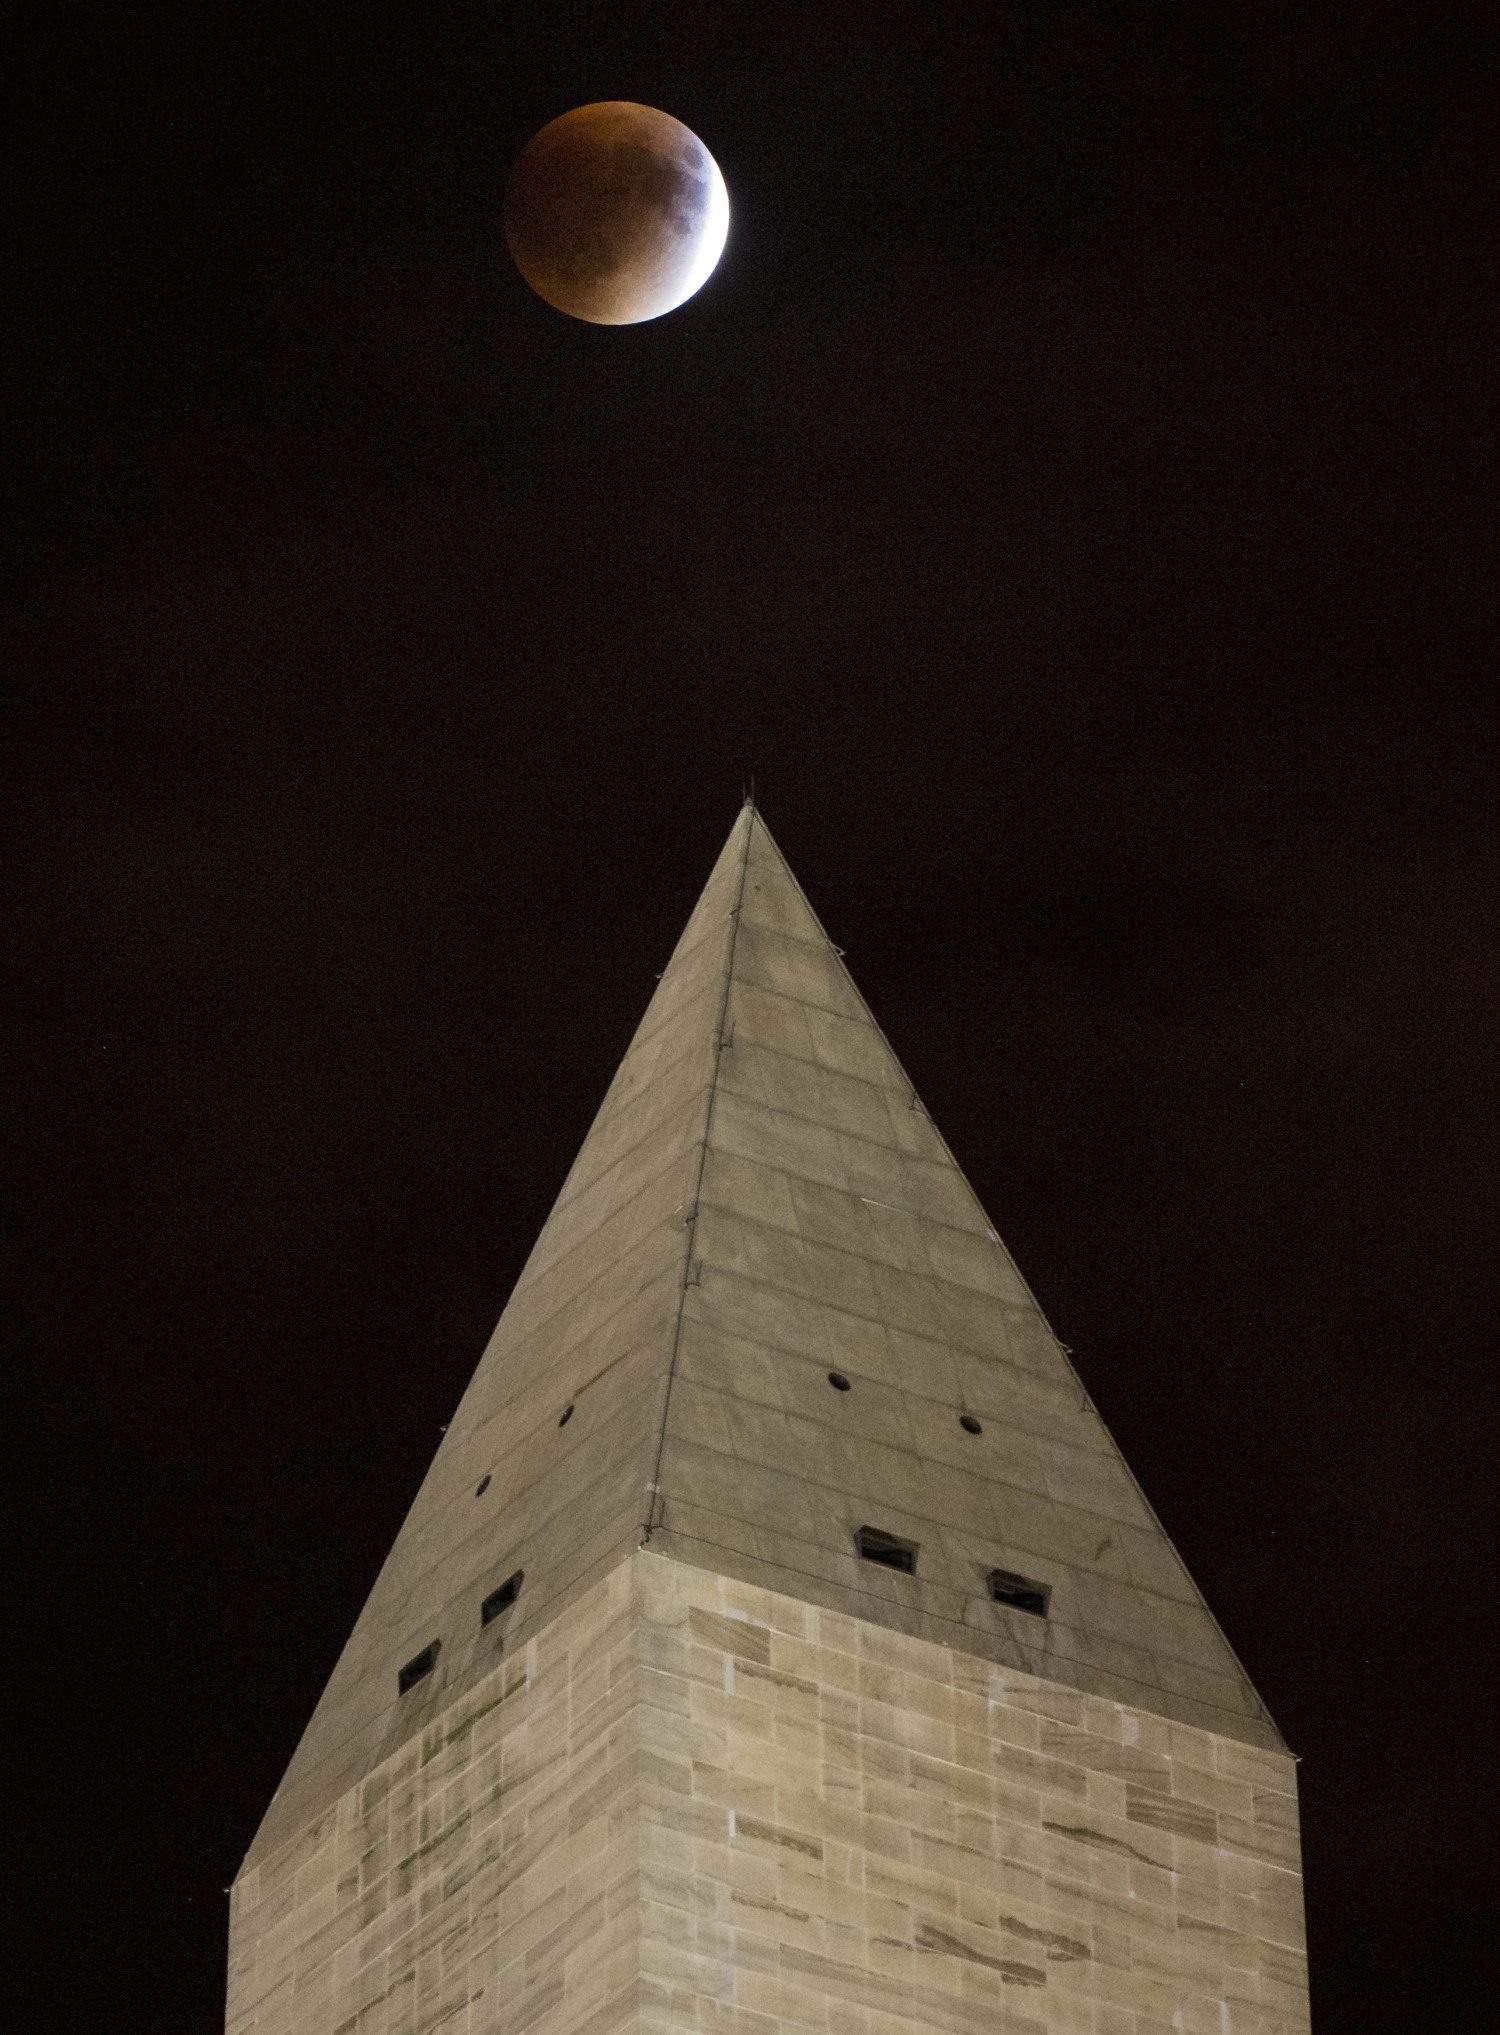 supermoon eclipse photo